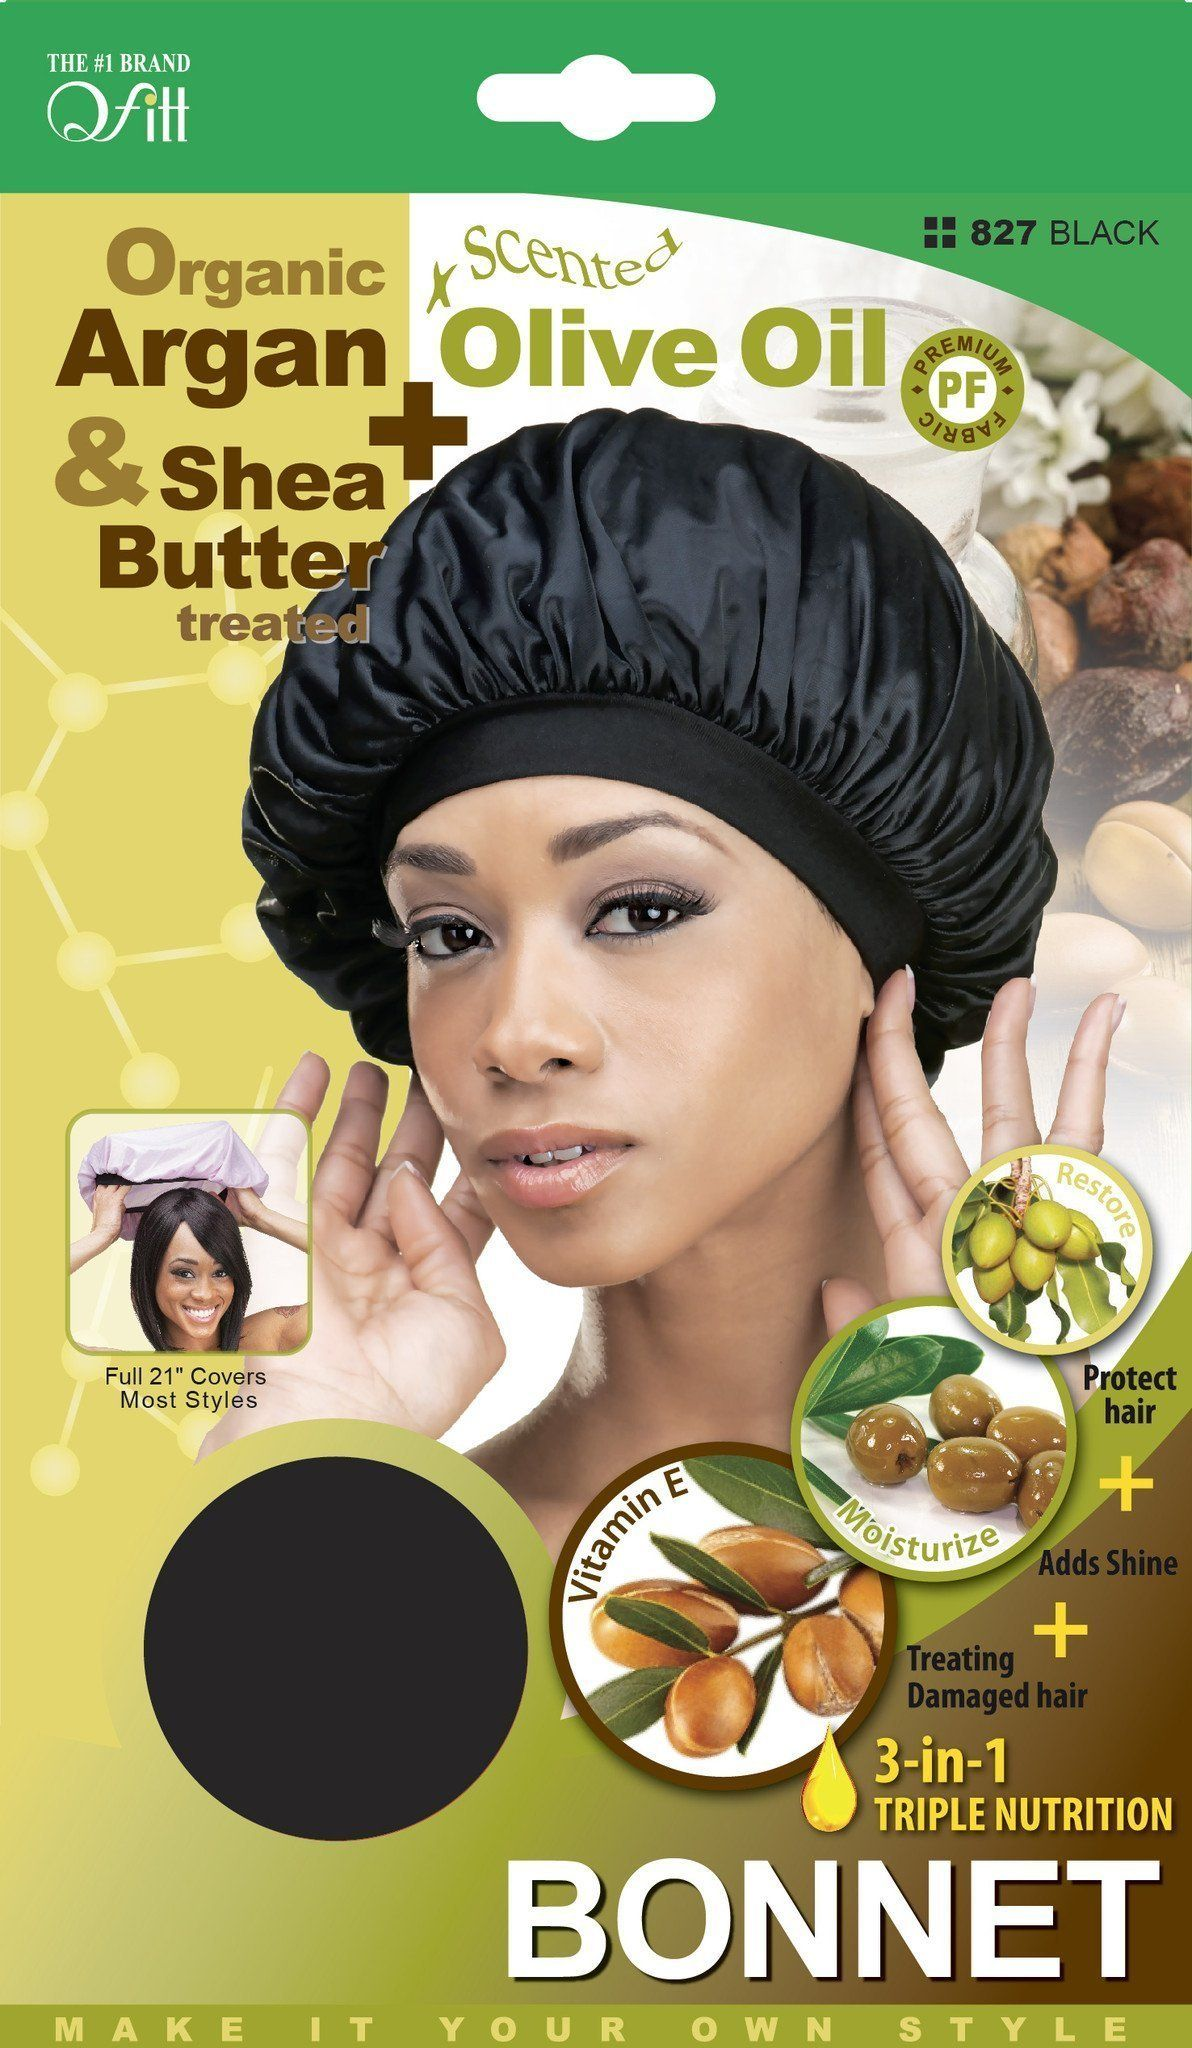 #827 Organic Bonnet / Black